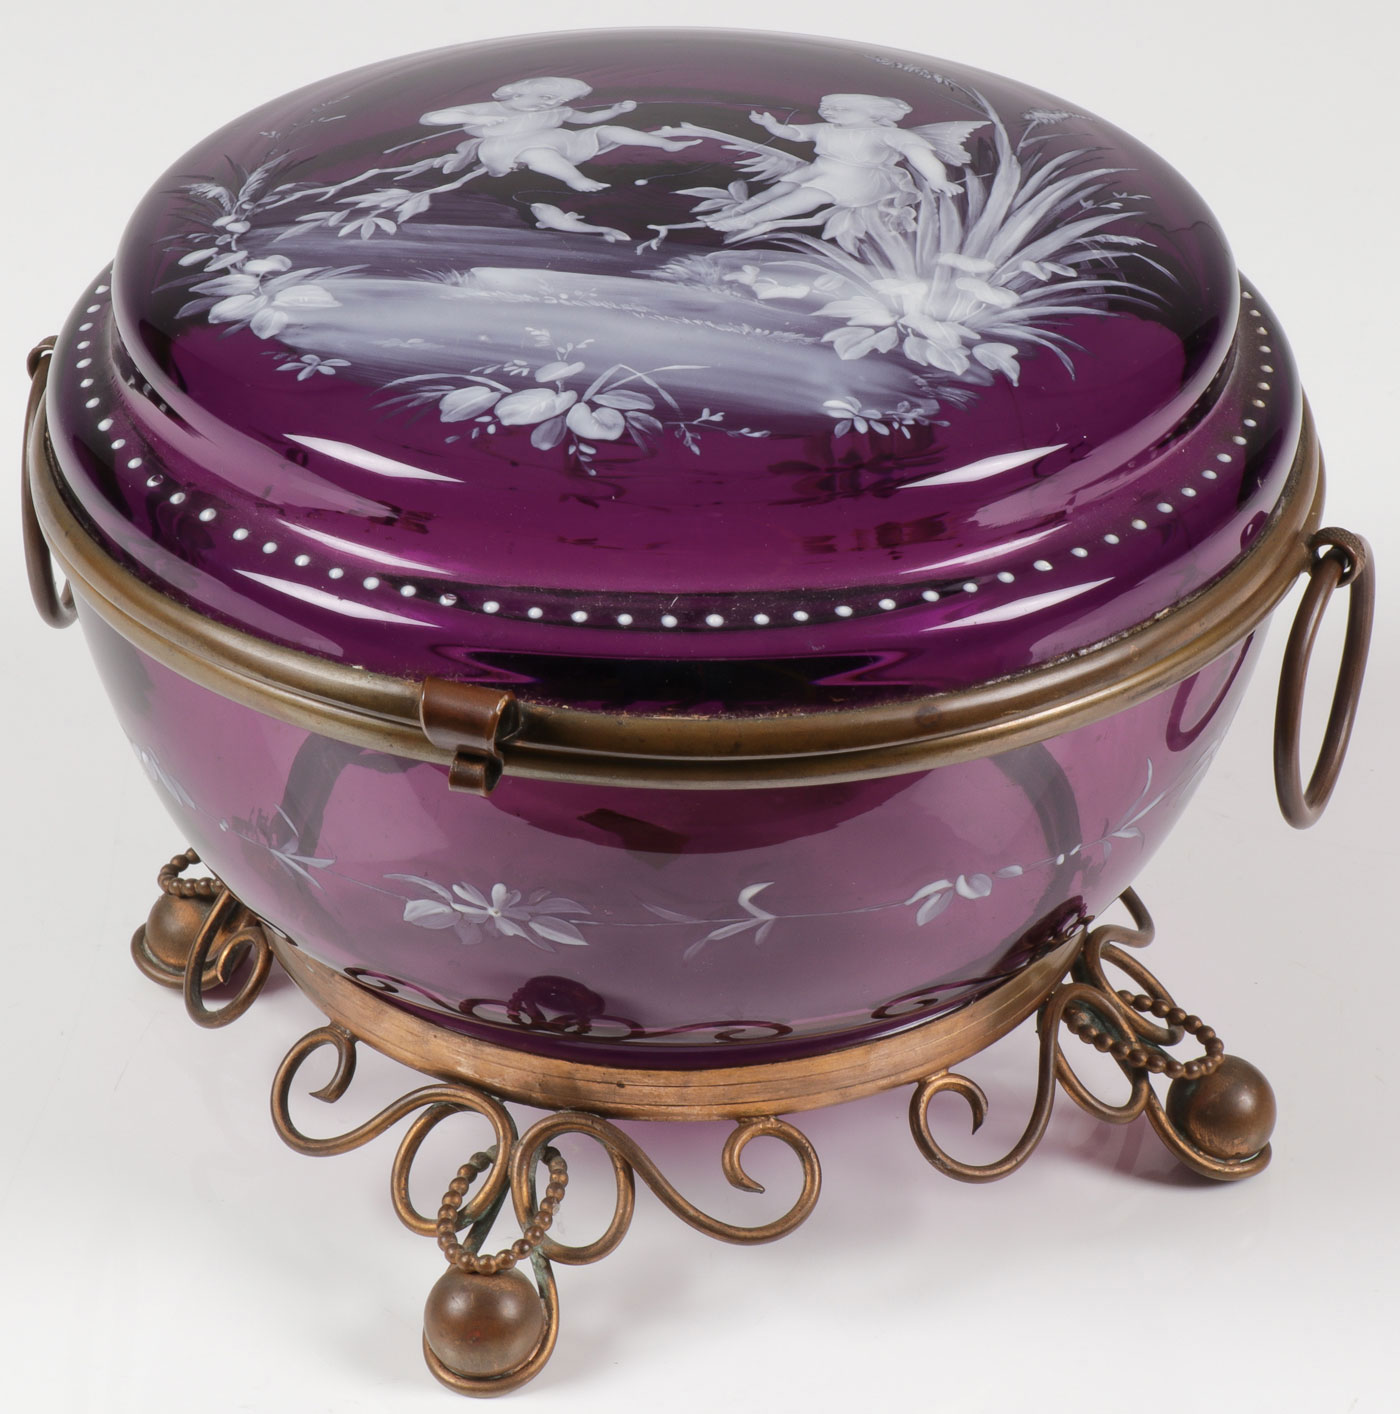 Lot 41 - A LARGE MARY GREGORY GLASS BOX